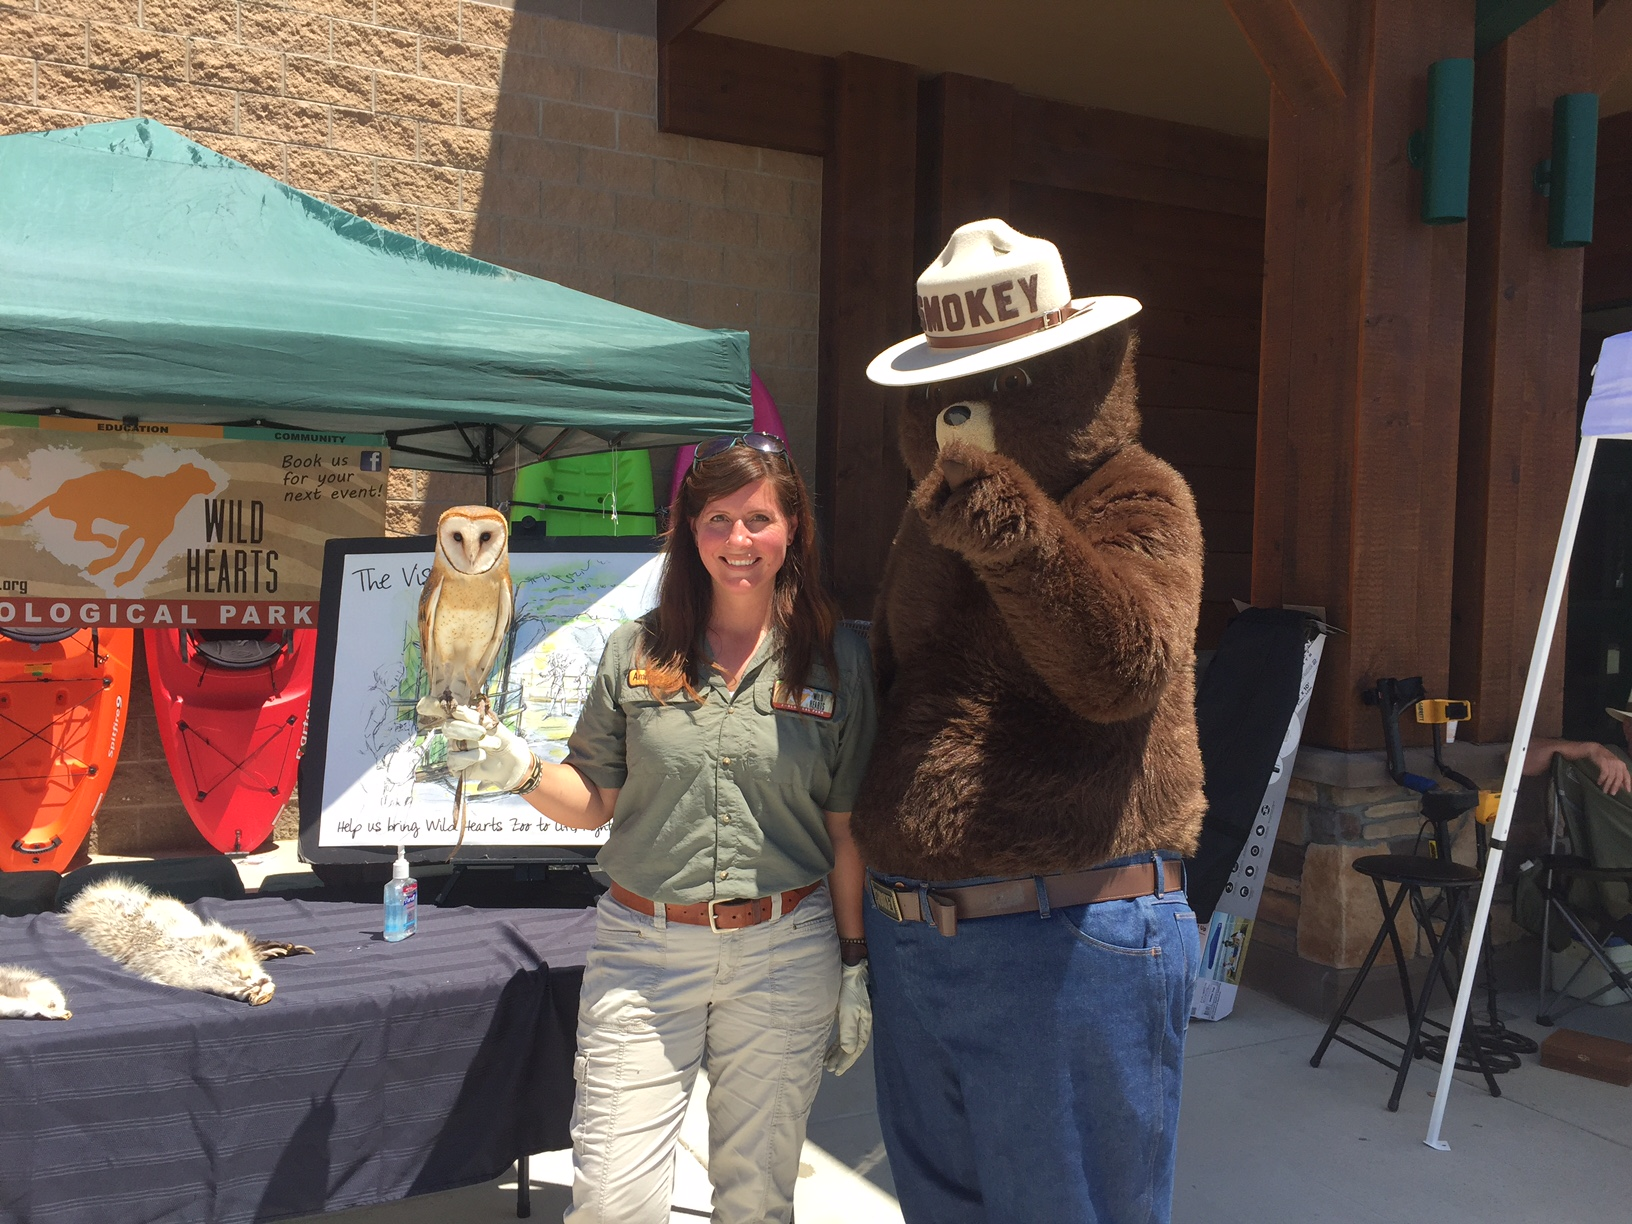 Wild Hearts and Smokey the Bear